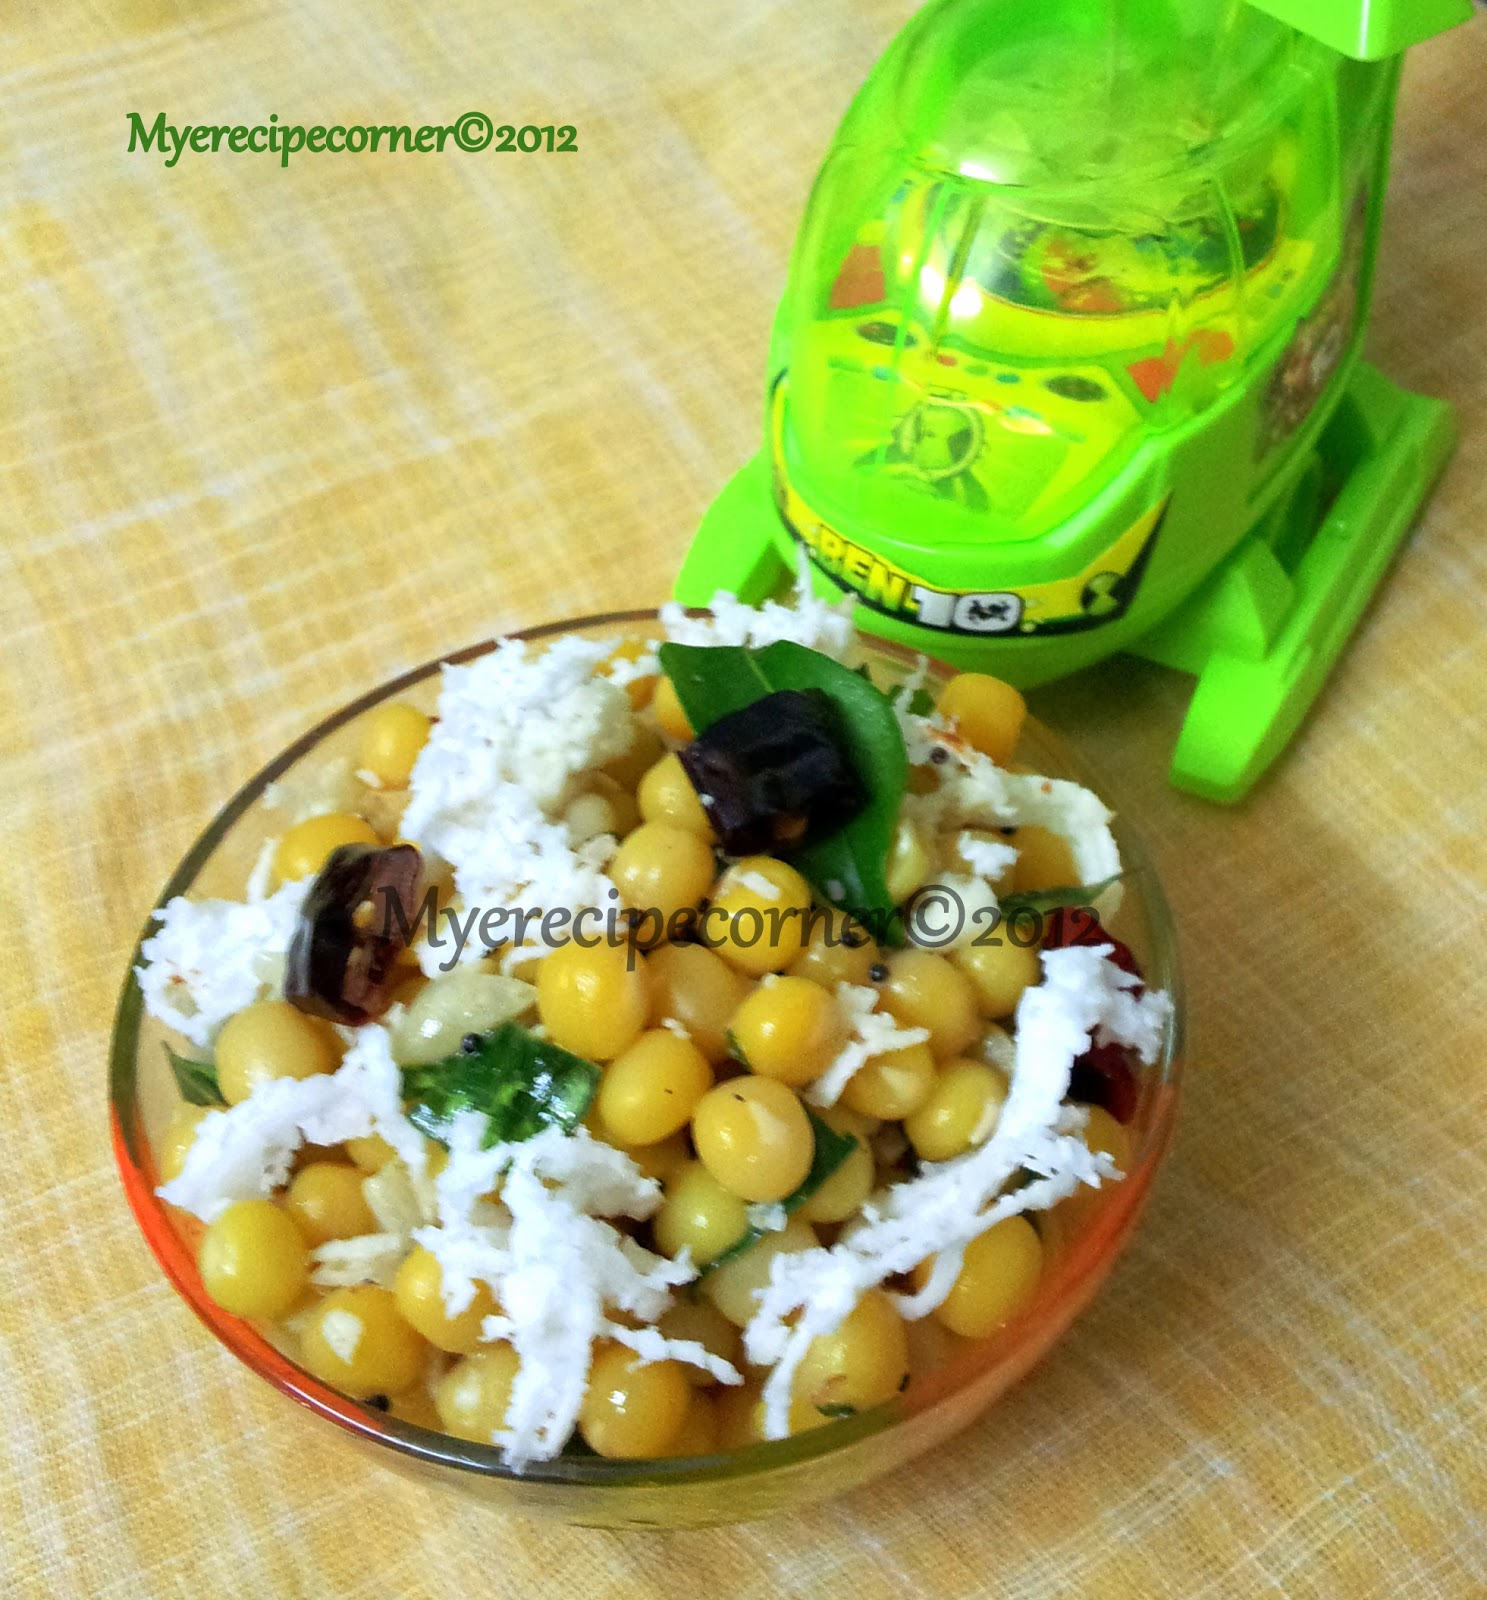 Myes kitchen pattani sundal peas sundal kids lunch box recipes pattani sundal peas sundal kids lunch box recipes indian forumfinder Choice Image